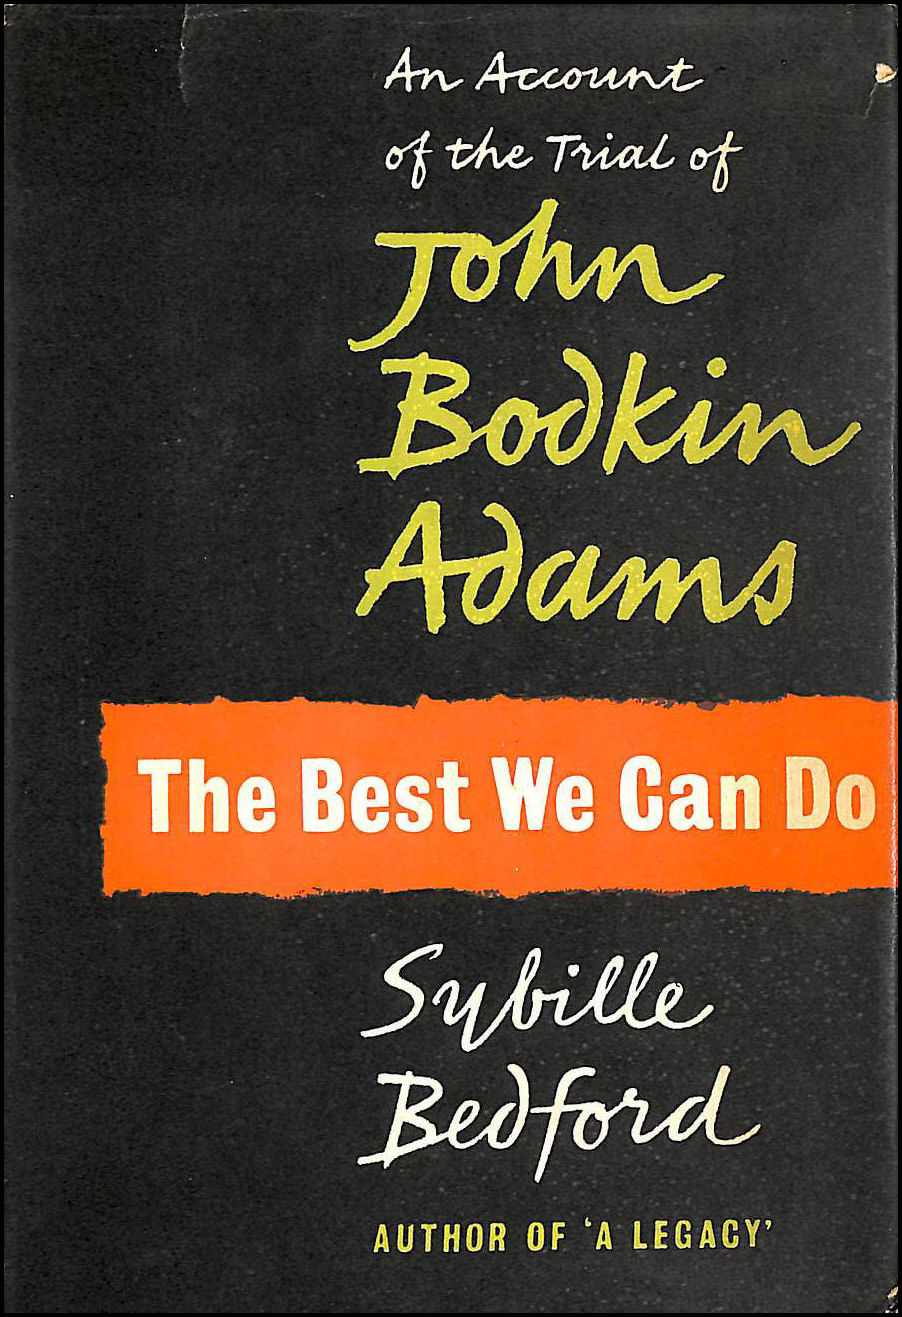 The best we can do: An account of the trial of John Bodkin Adams, Bedford, Sybille